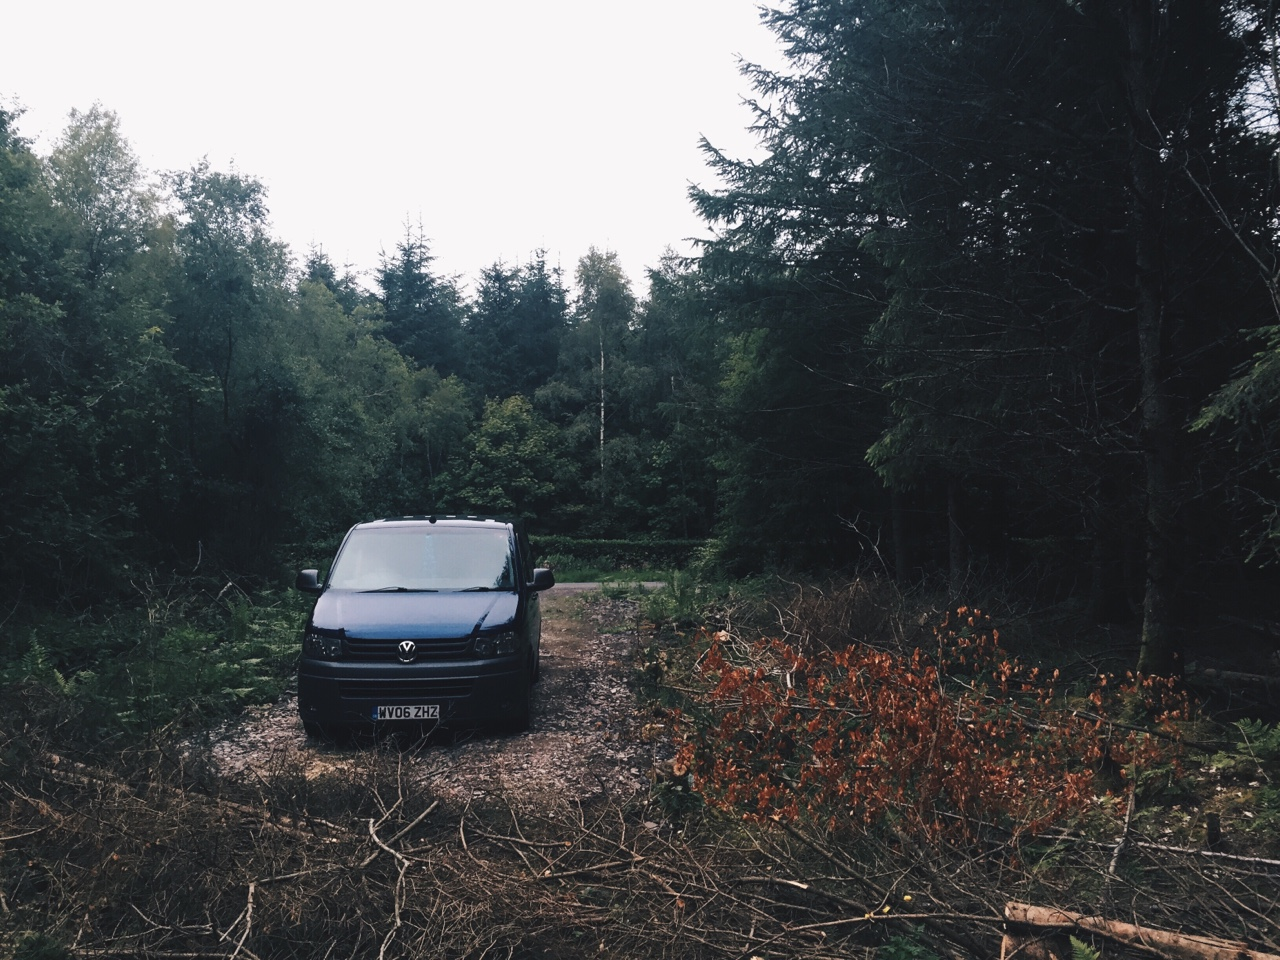 Wild Camping in a small wood